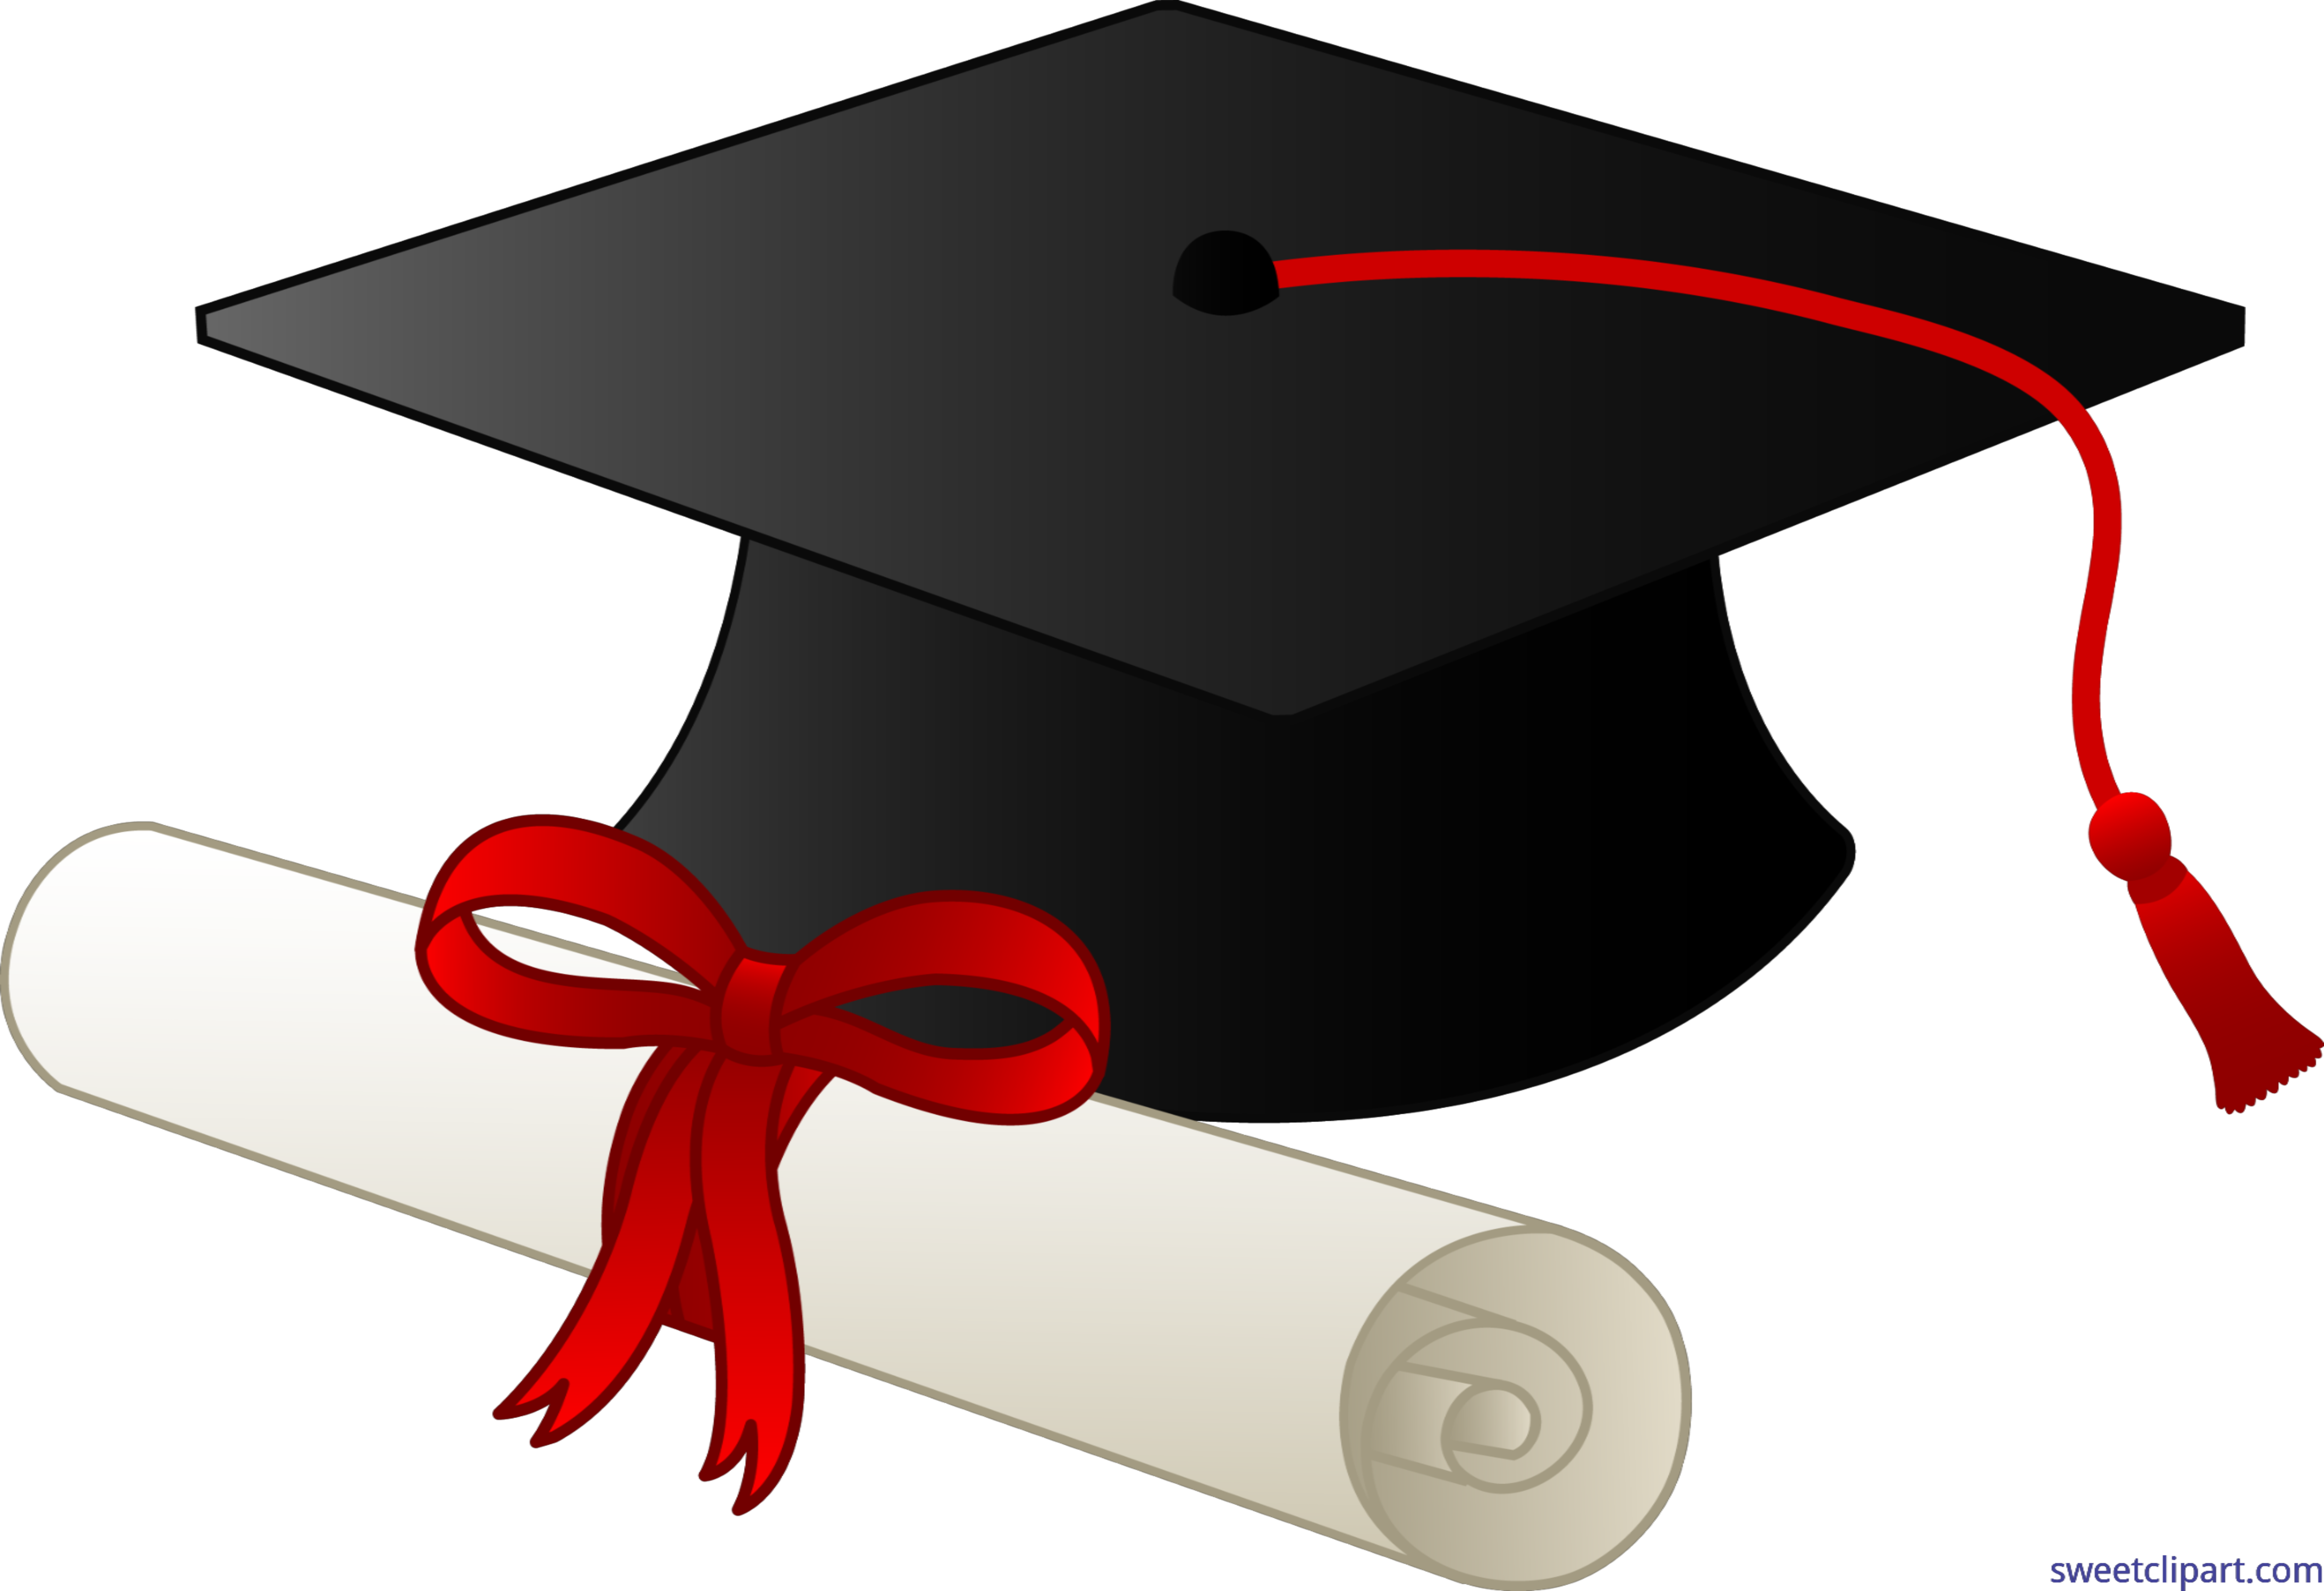 Diploma clipart college diploma. Graduation cap and clip